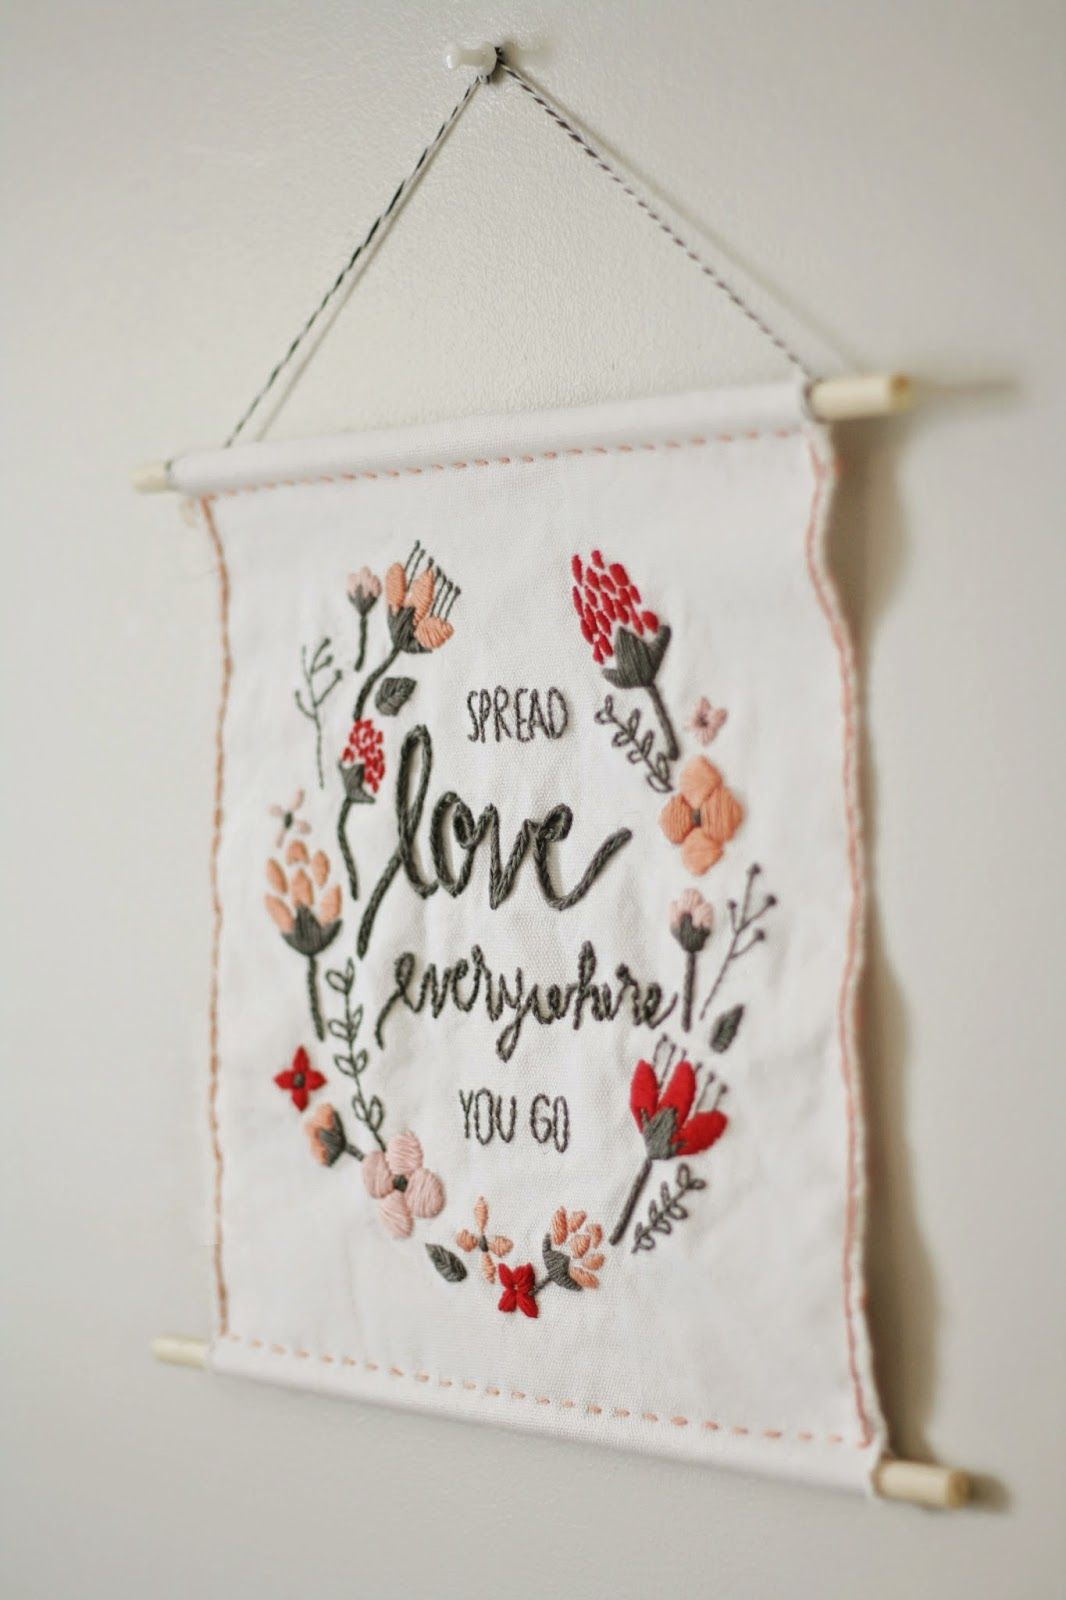 Diy Valentine Wall Hanging Embroidery Inspiration Diy Embroidery Embroidery Gifts